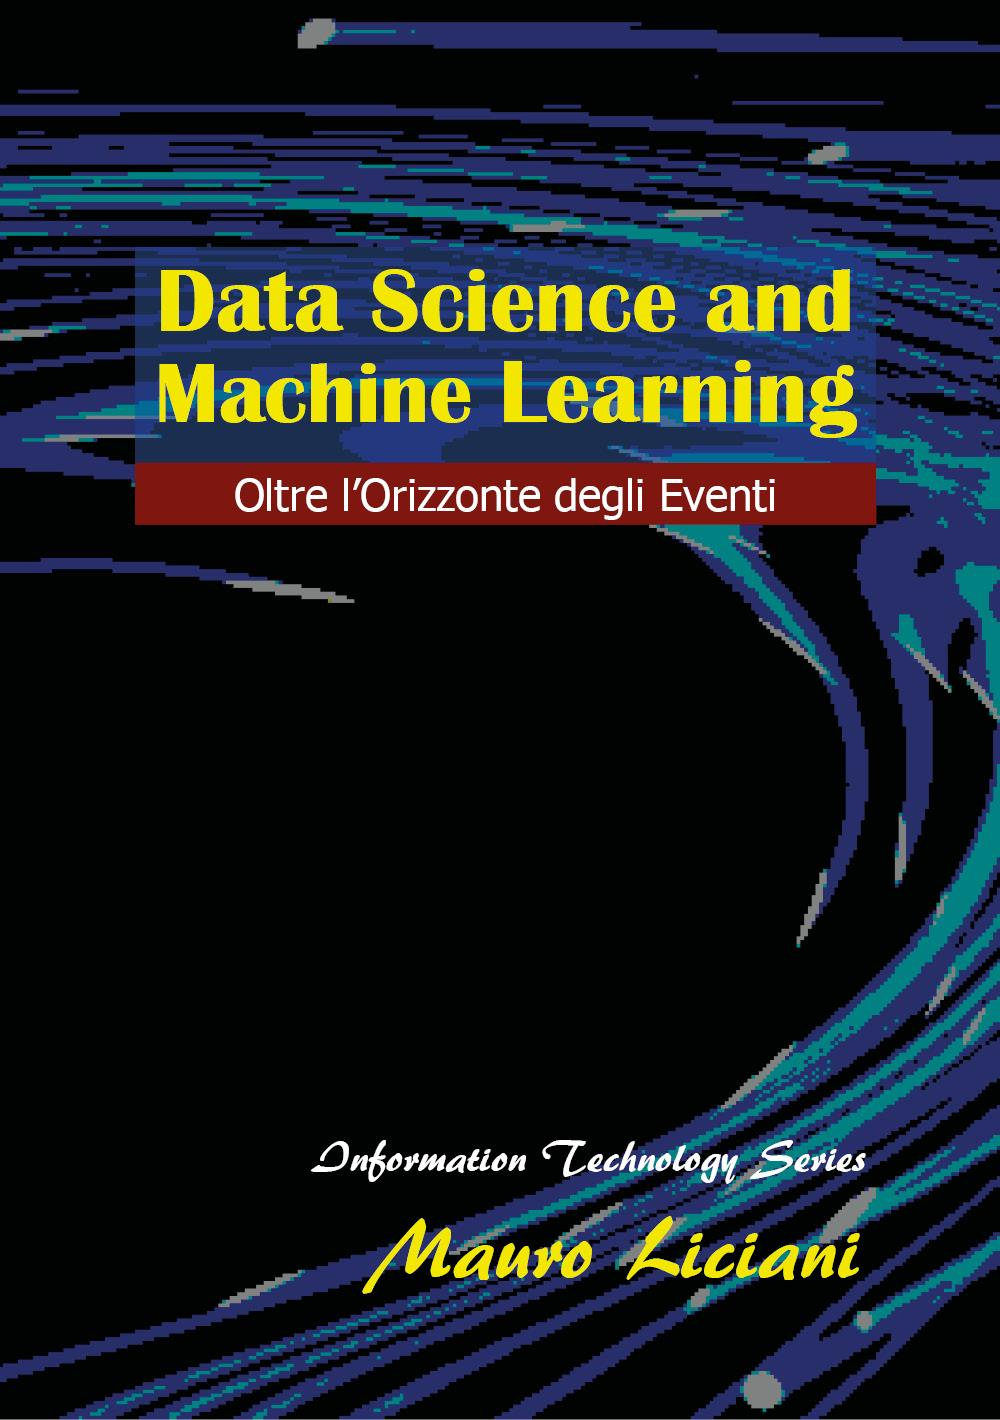 Data Science and Machine Learning